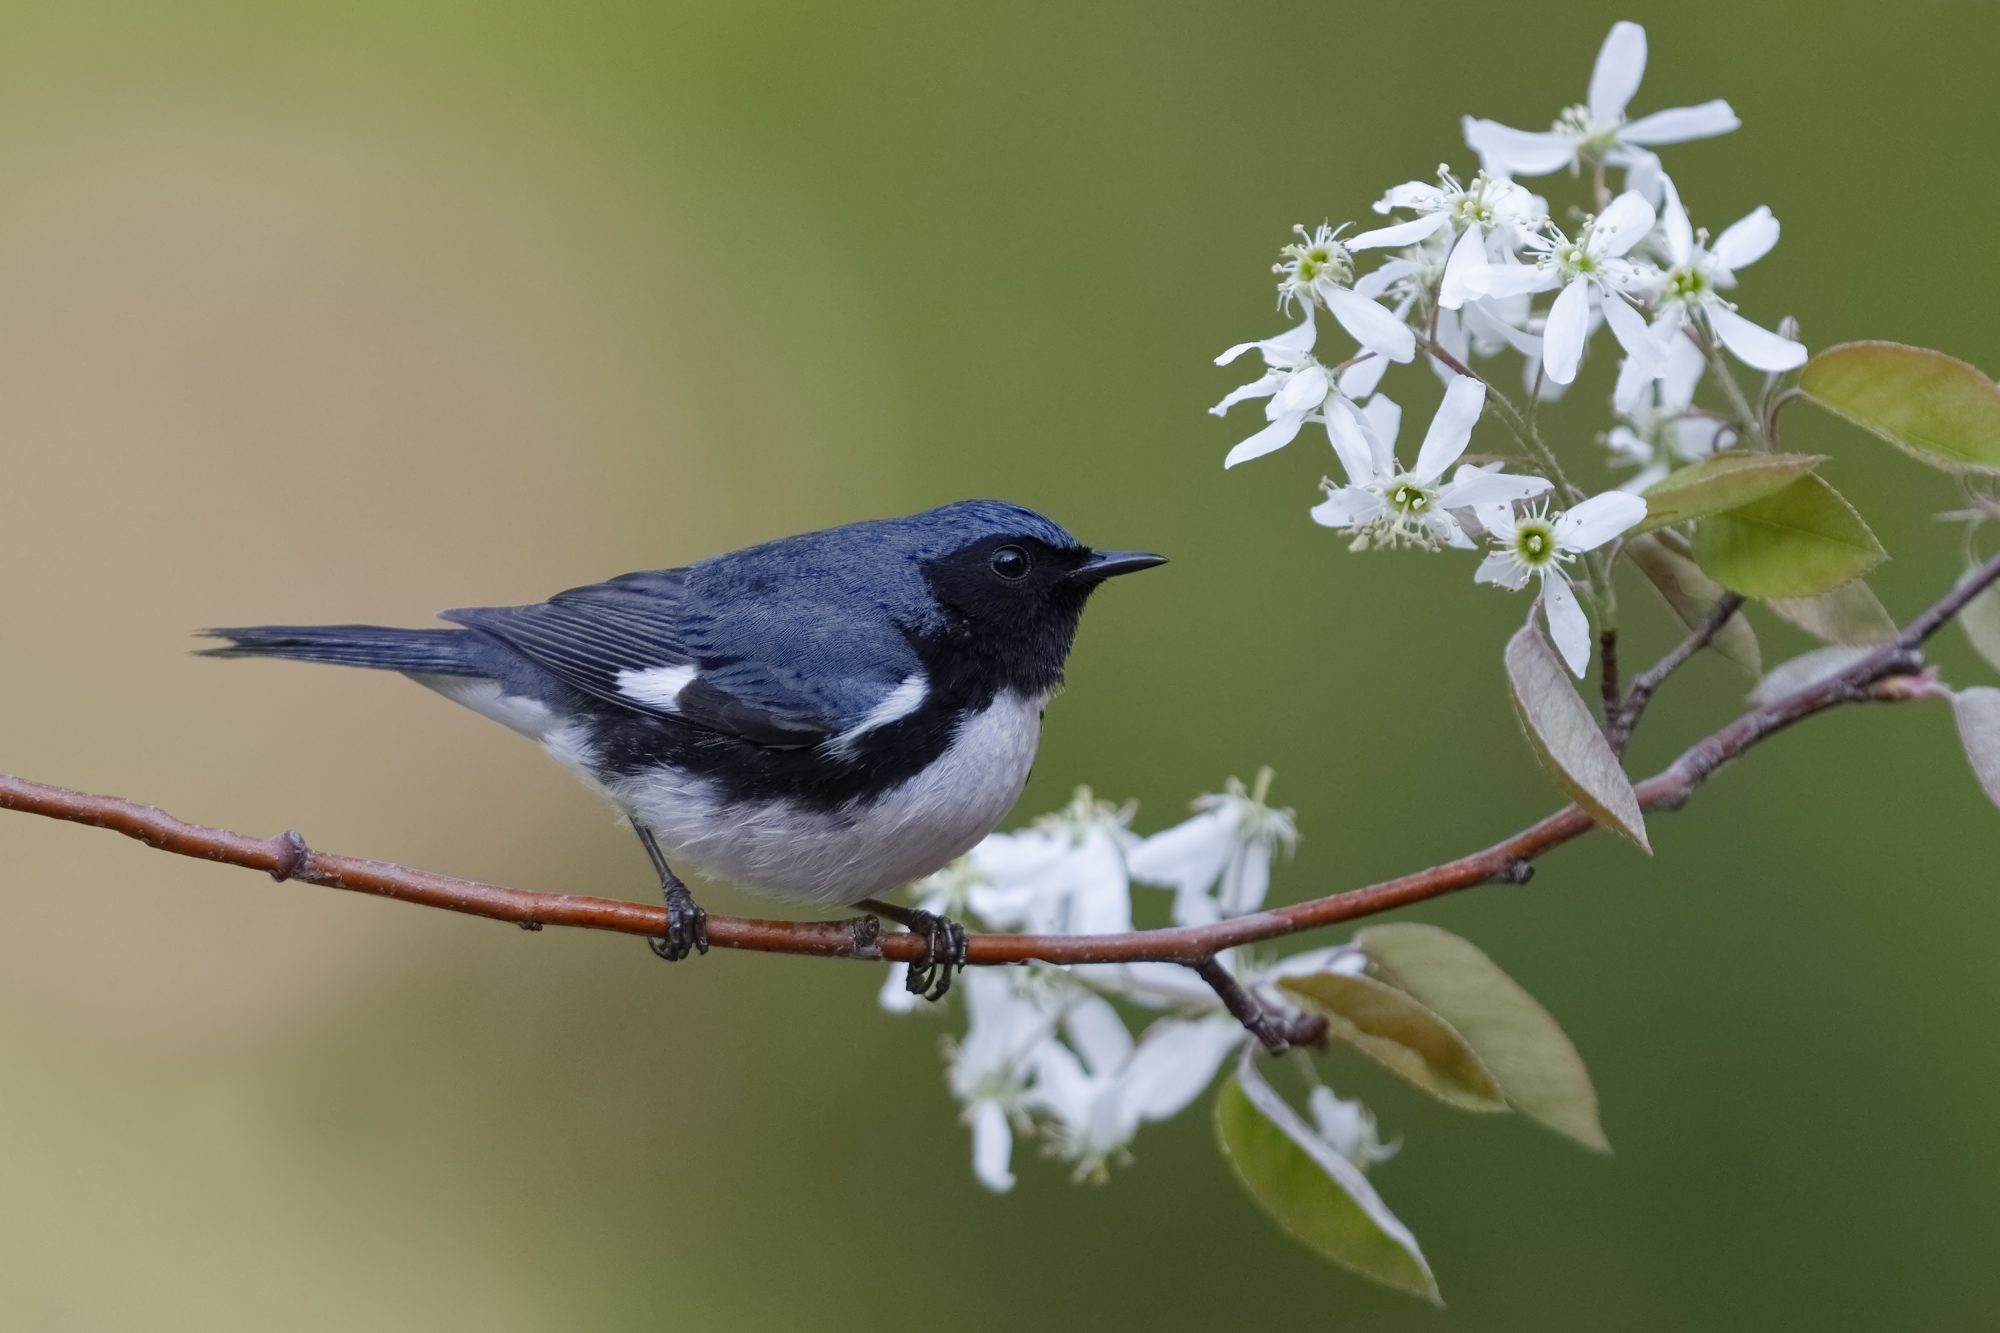 A New Study Finds That Bird Migration Begins Earlier Each Spring